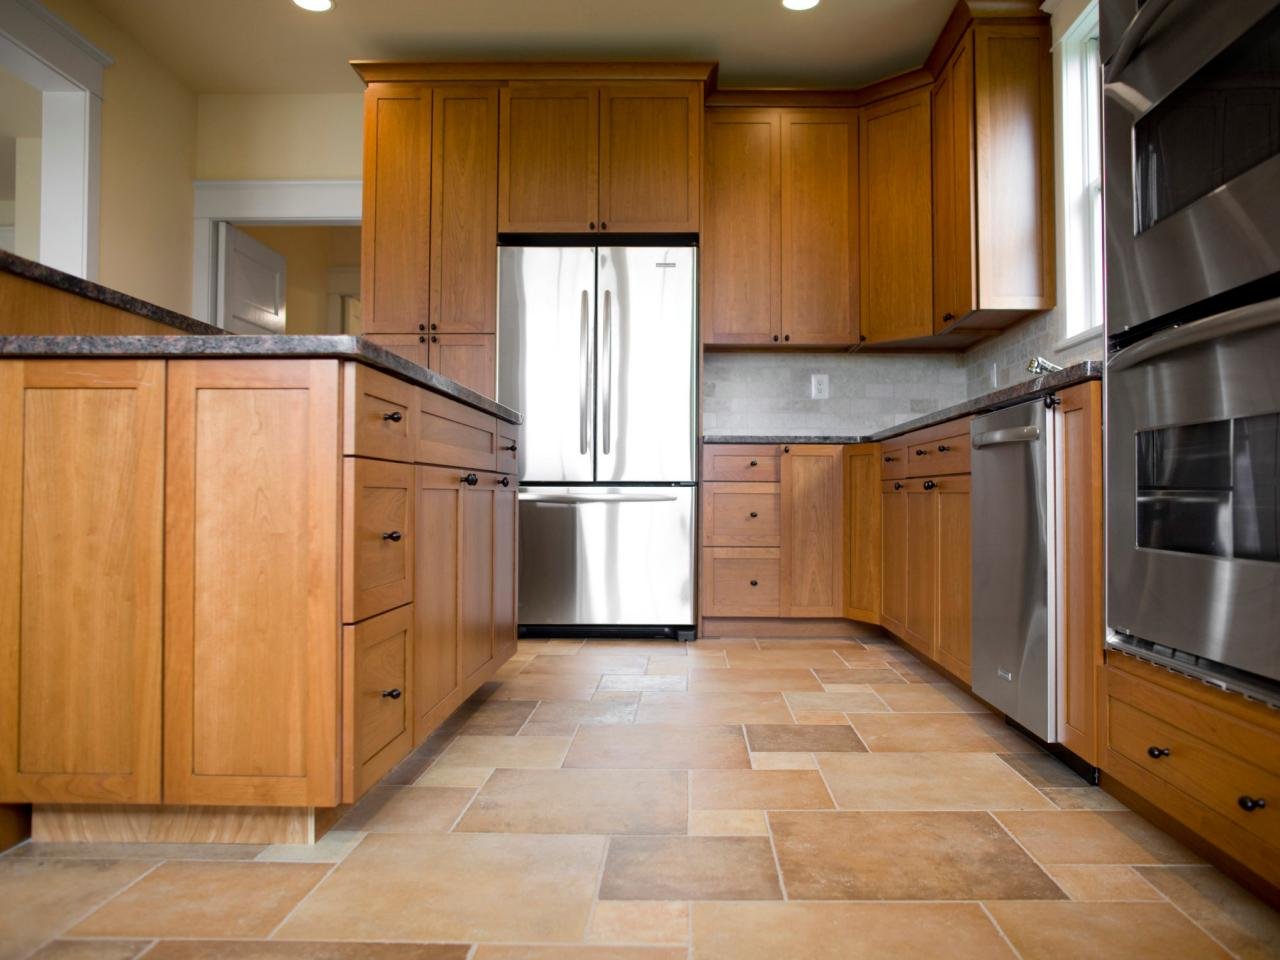 Floor Tiles In Kitchen Whats The Best Kitchen Floor Tile Diy